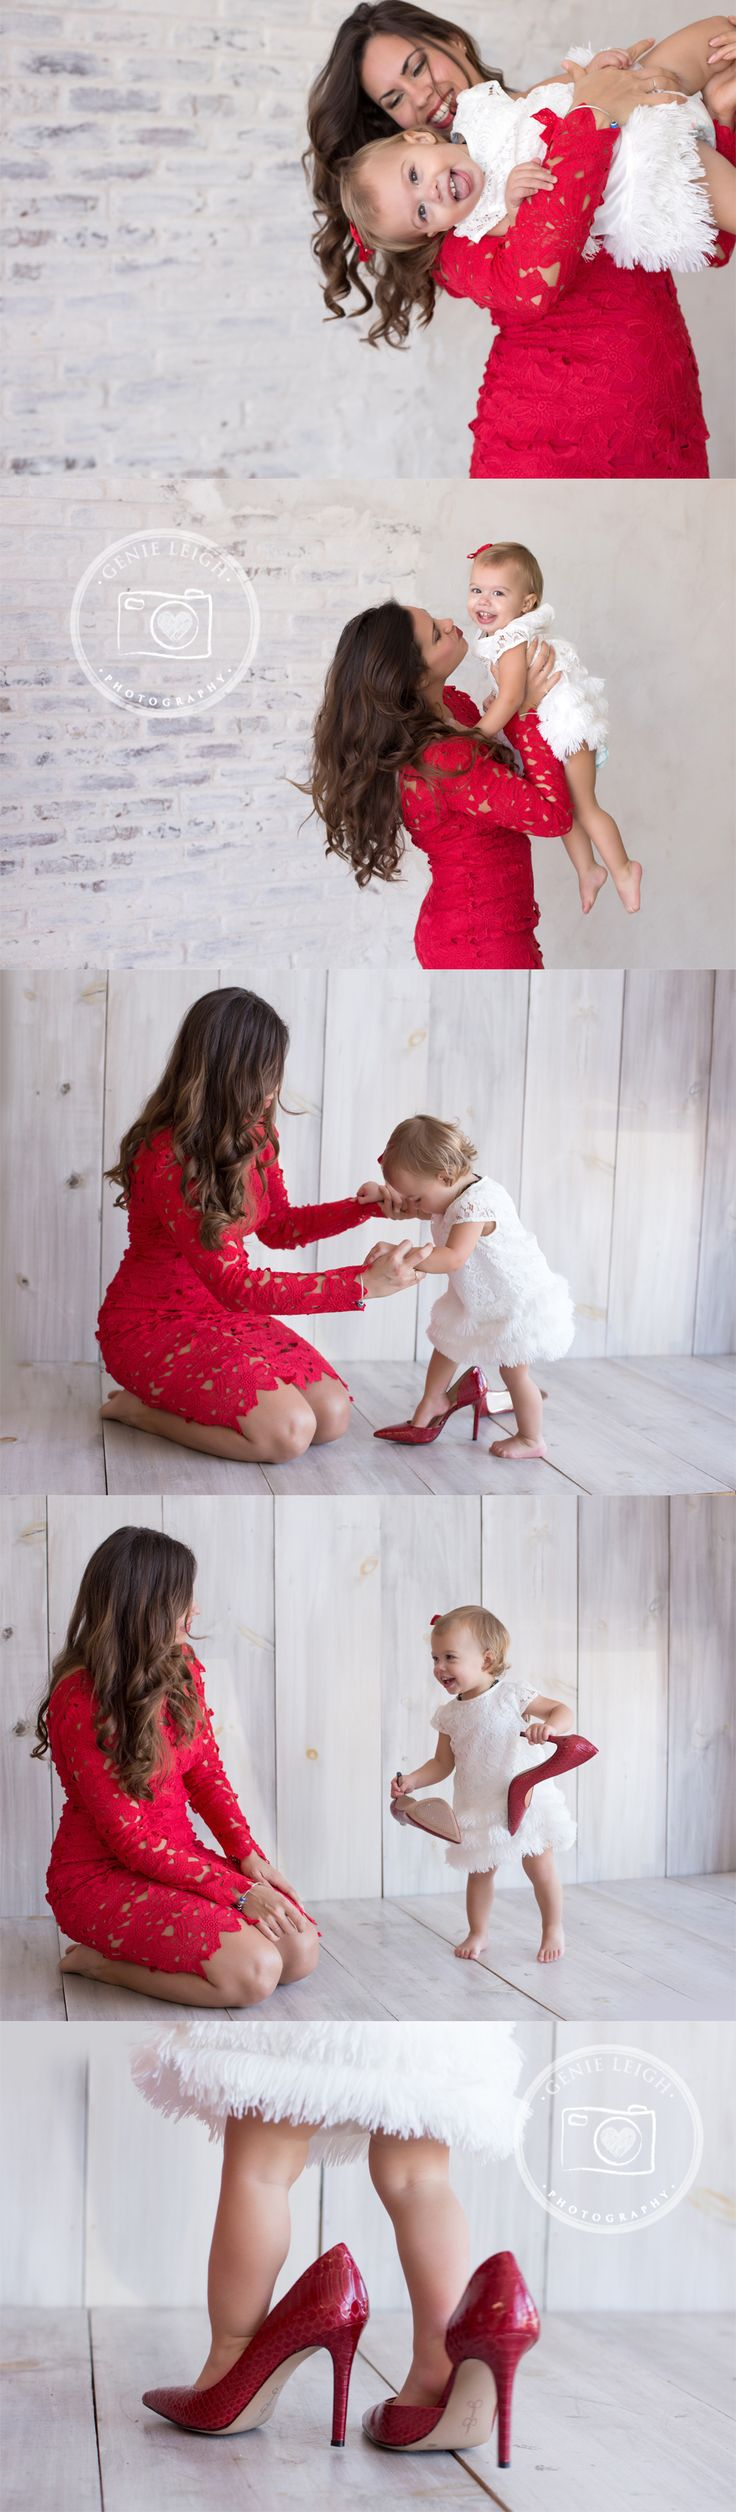 Genie Leigh Photography, Studio, Shallotte, NC, Wilmington Portrait, Family Photography, Baby Photo Session, Mommie & Me, What to wear photo session, Red Lace, Mommy & Baby